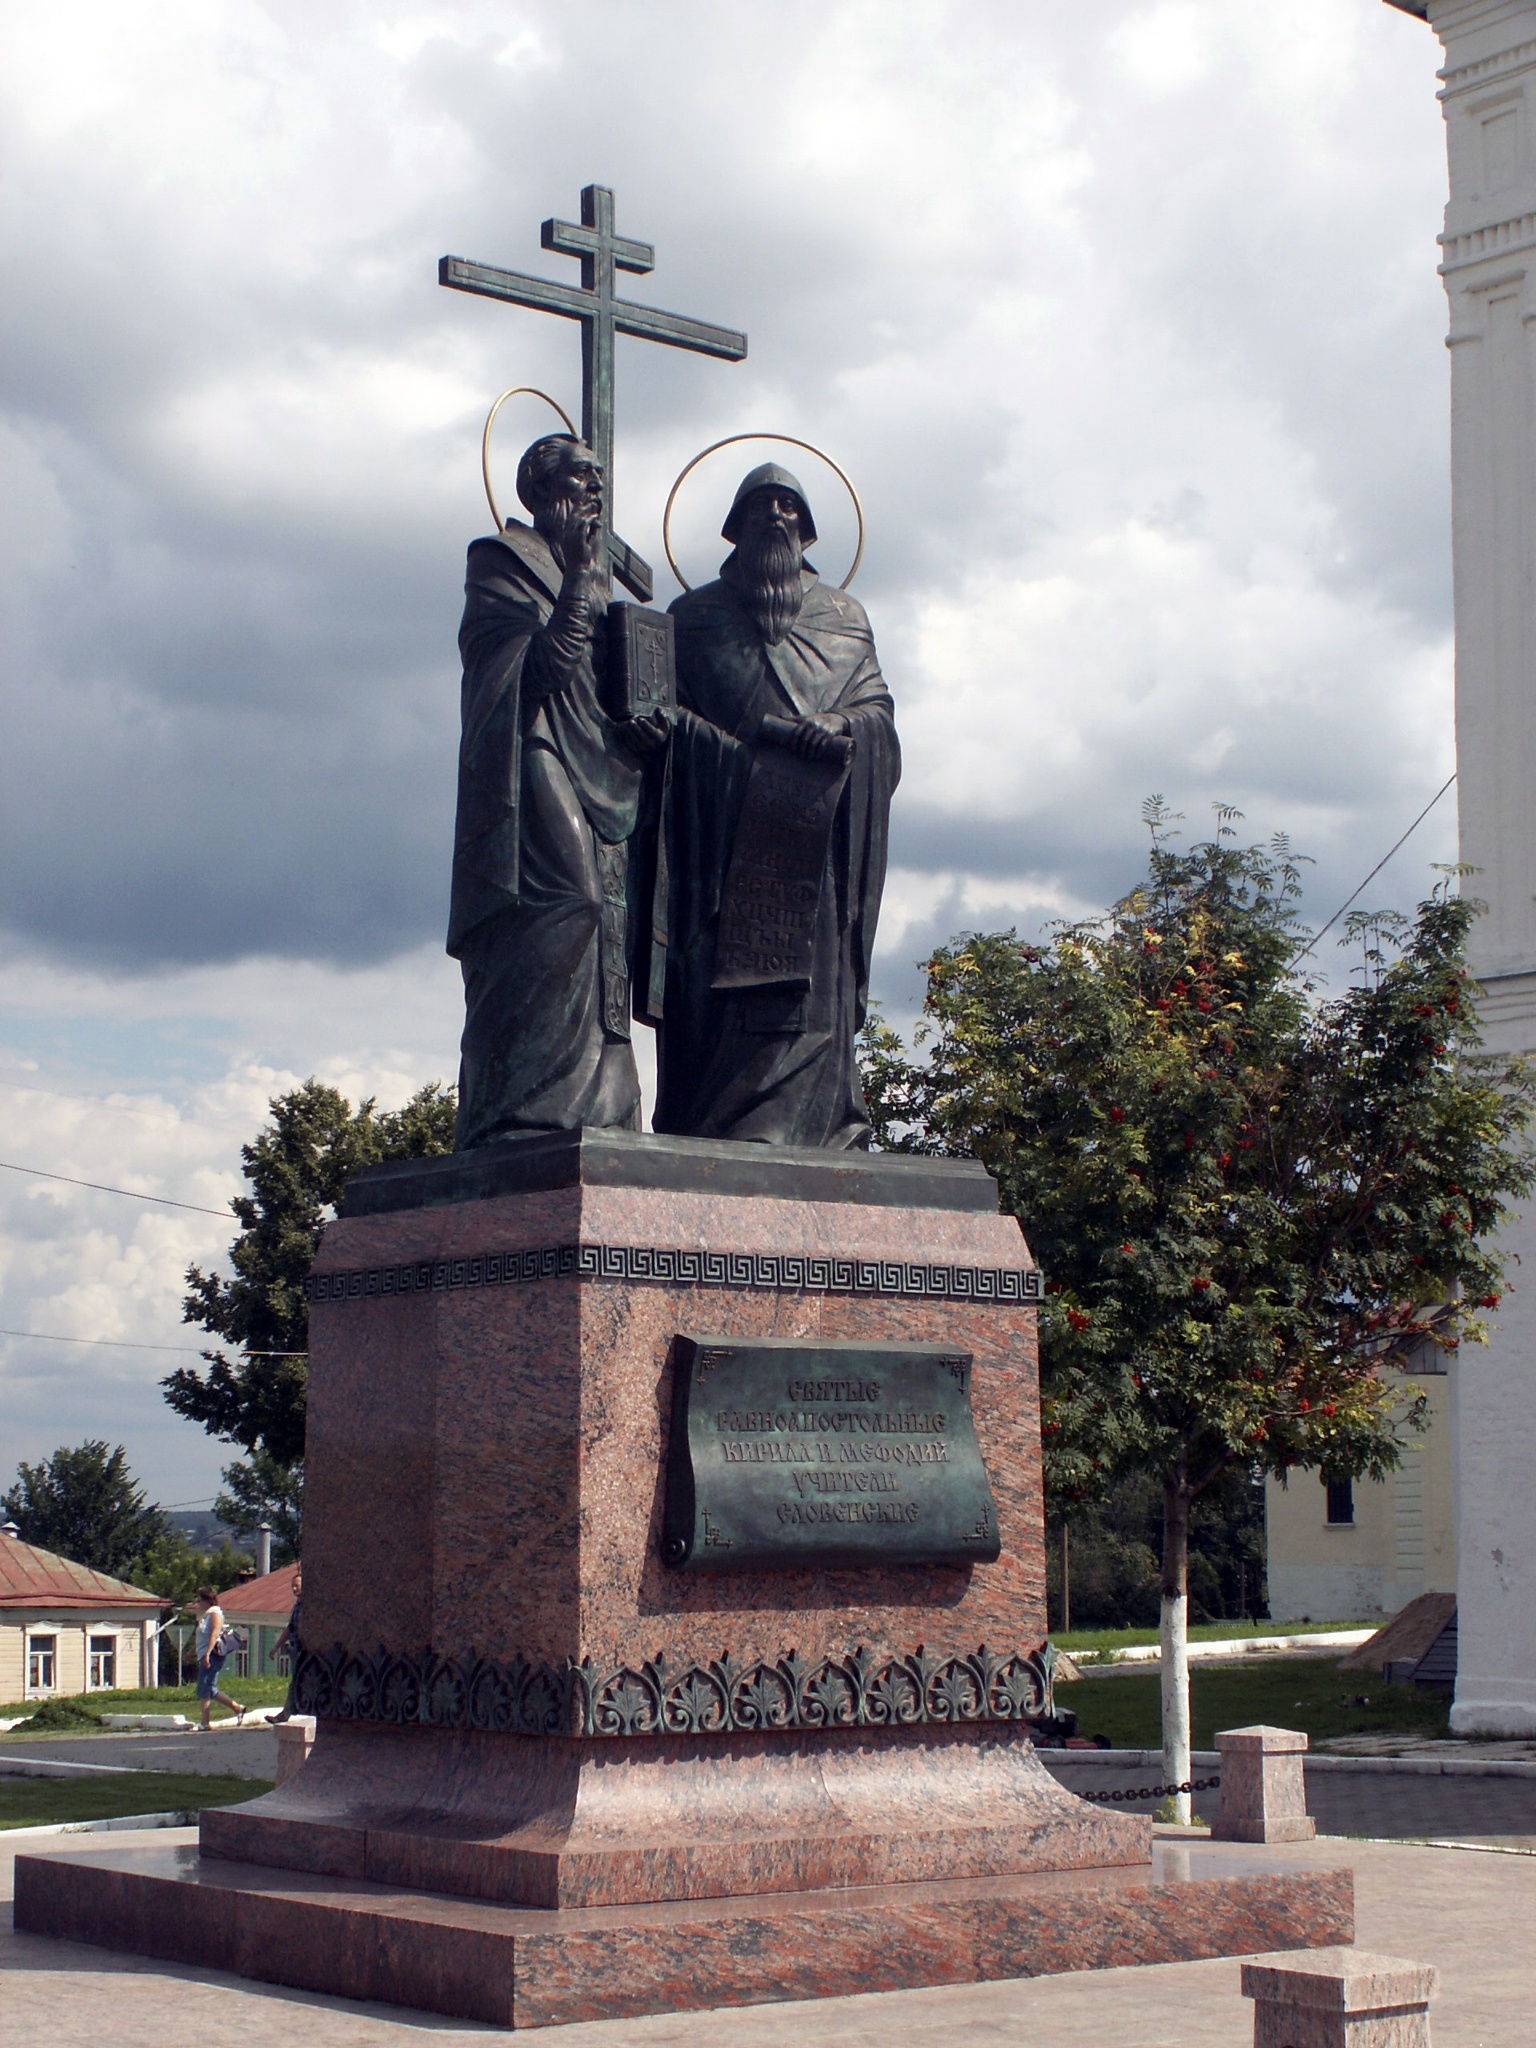 Cyril and Methodius by Alex  Falcon